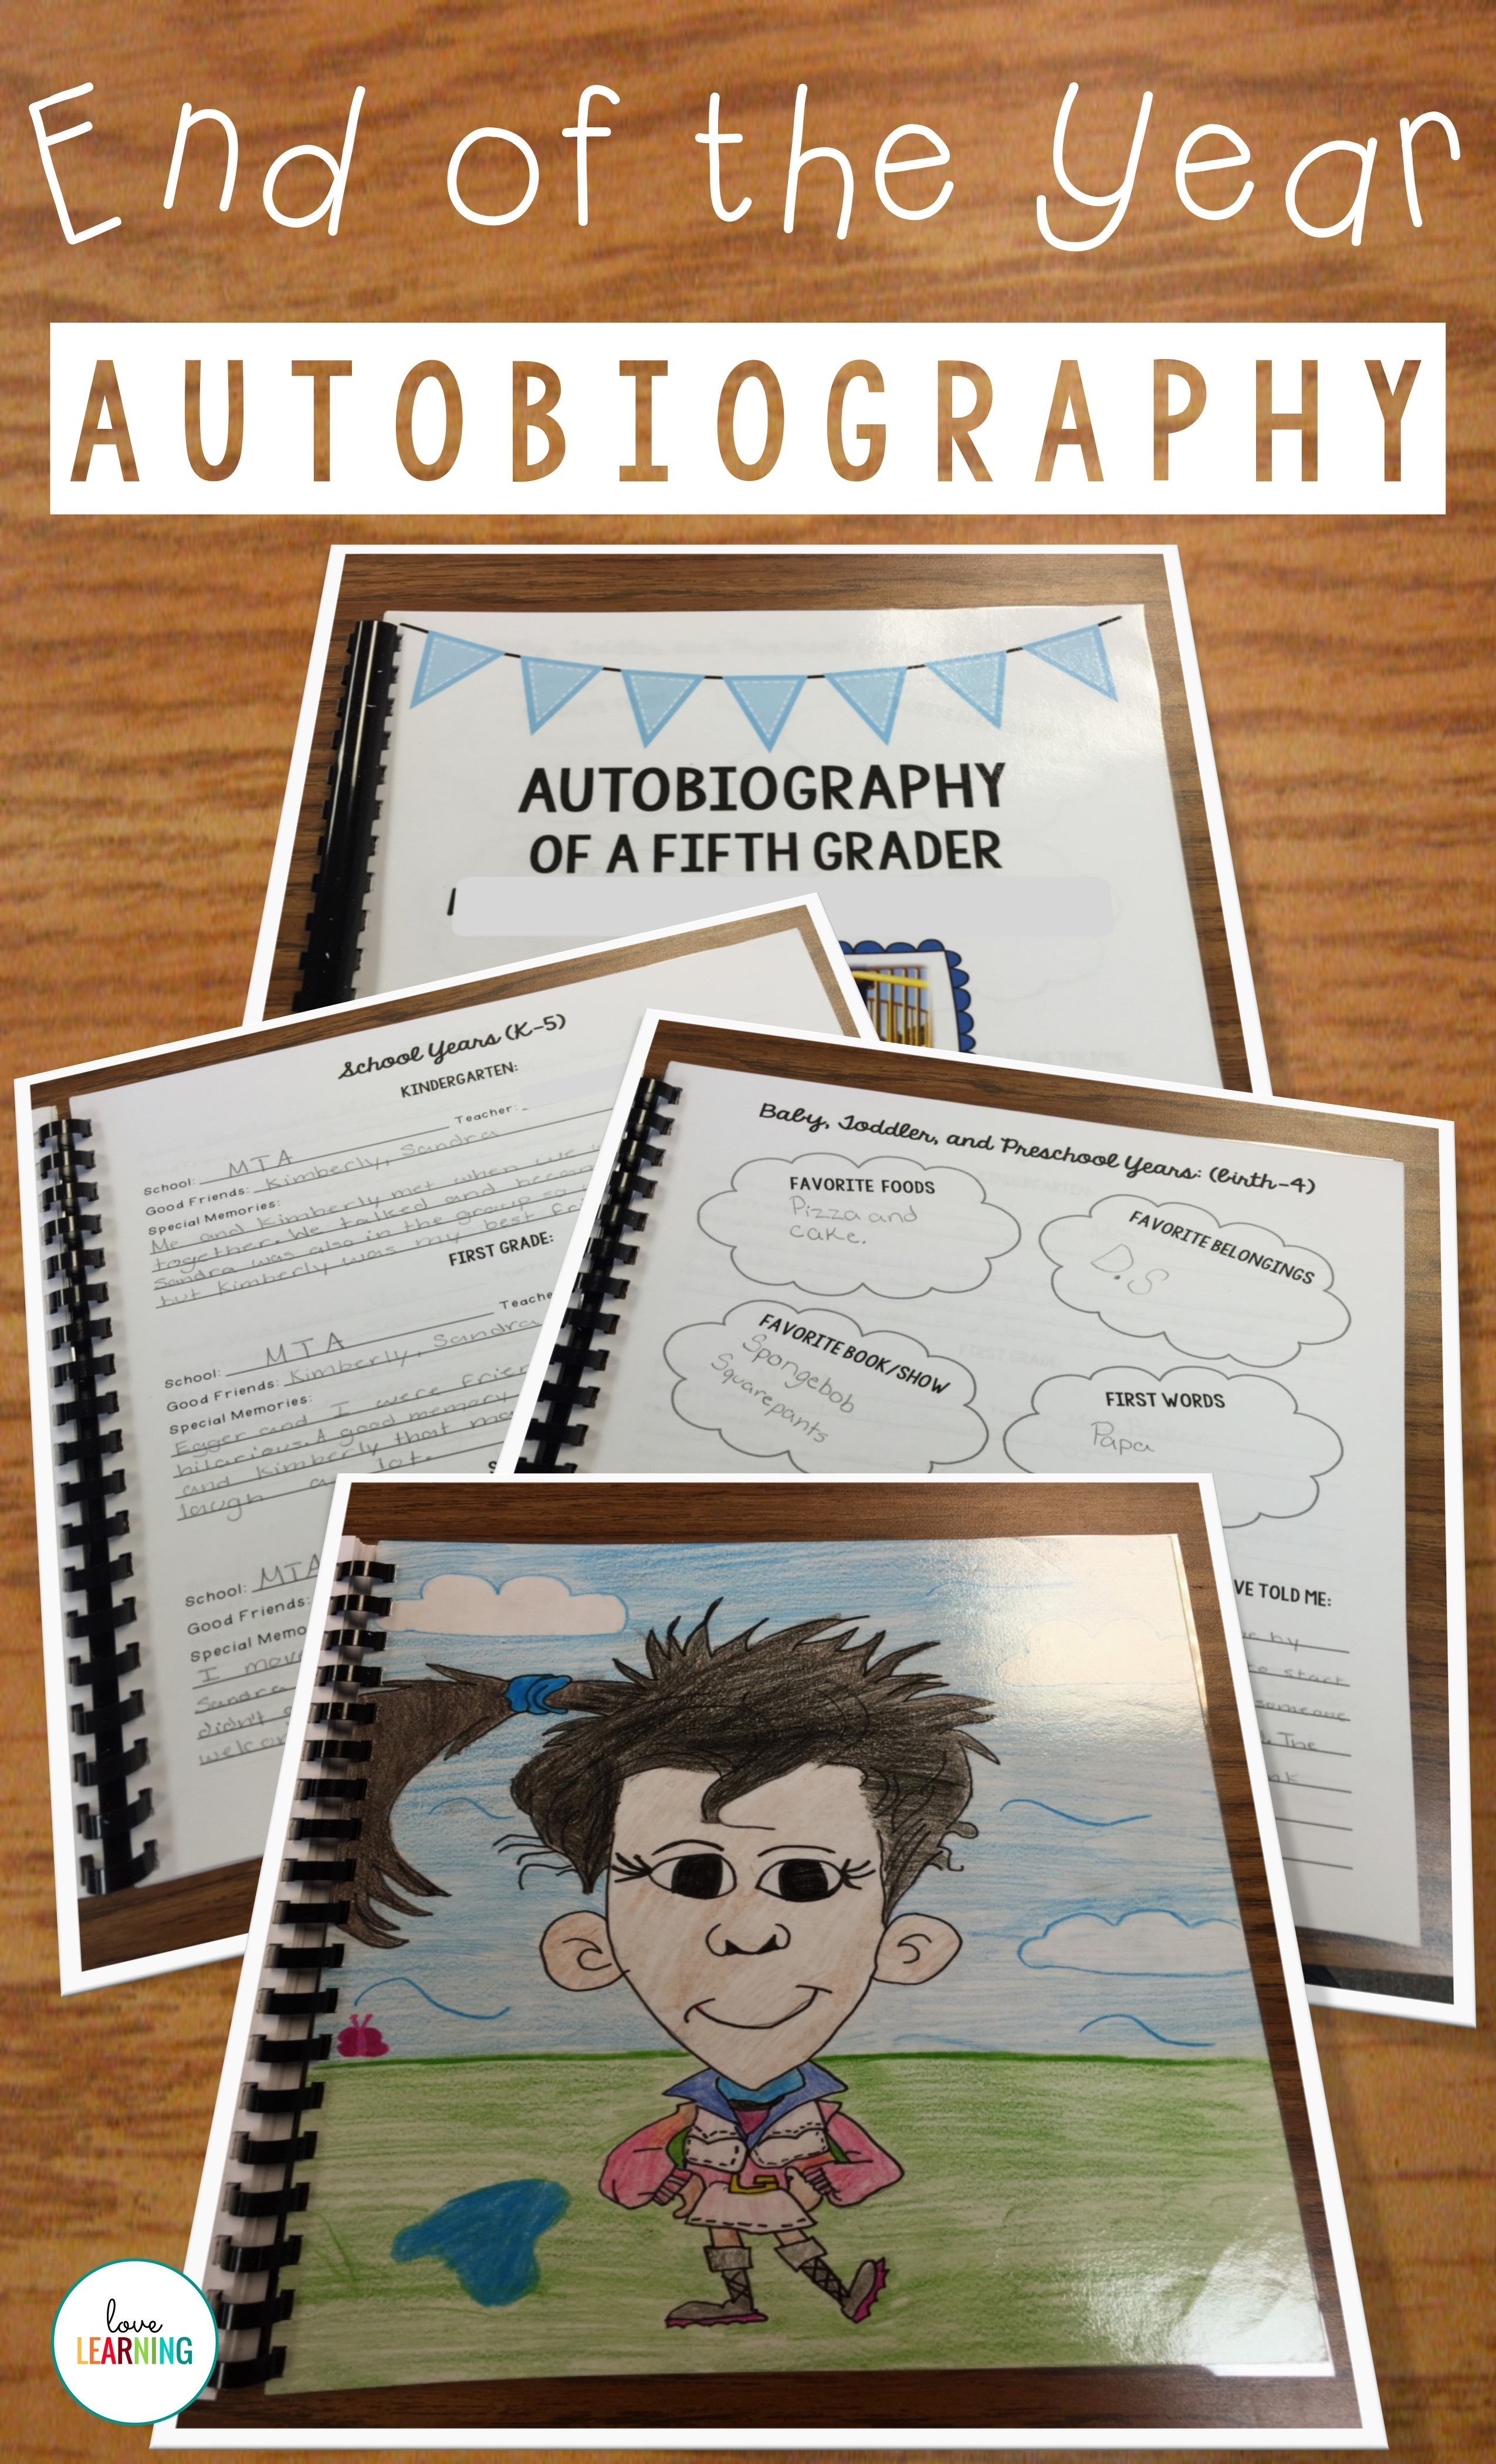 End of the year memory book autobiography of a fifth